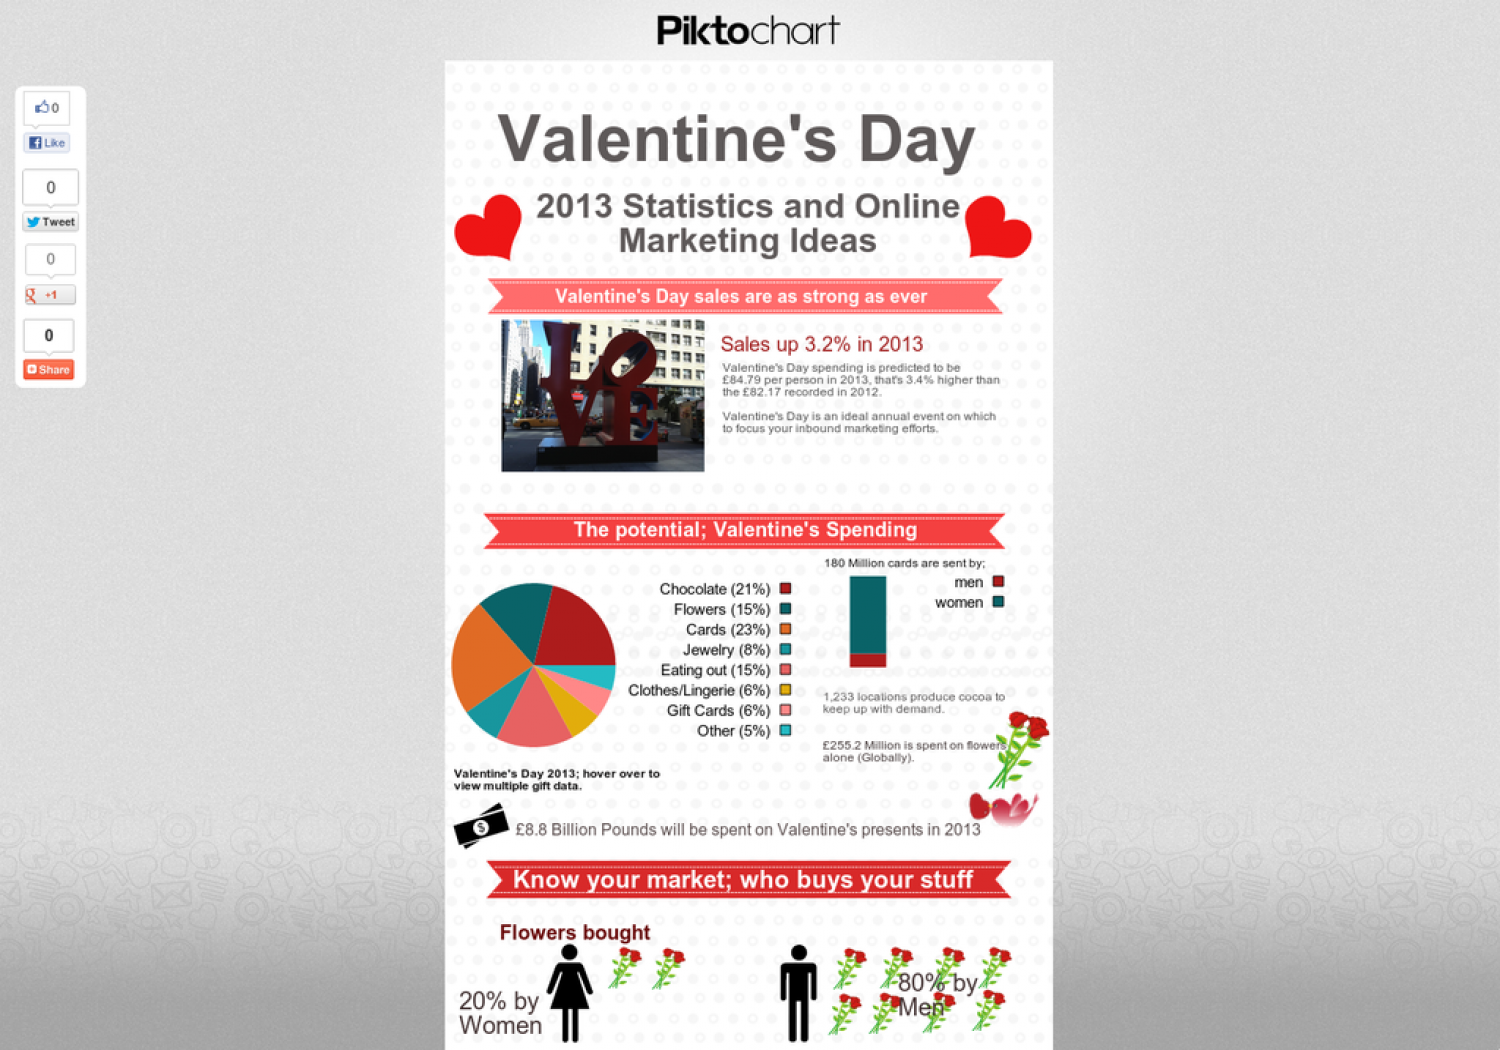 Valentine's Day 2013 Statistics and Marketing Ideas Infographic